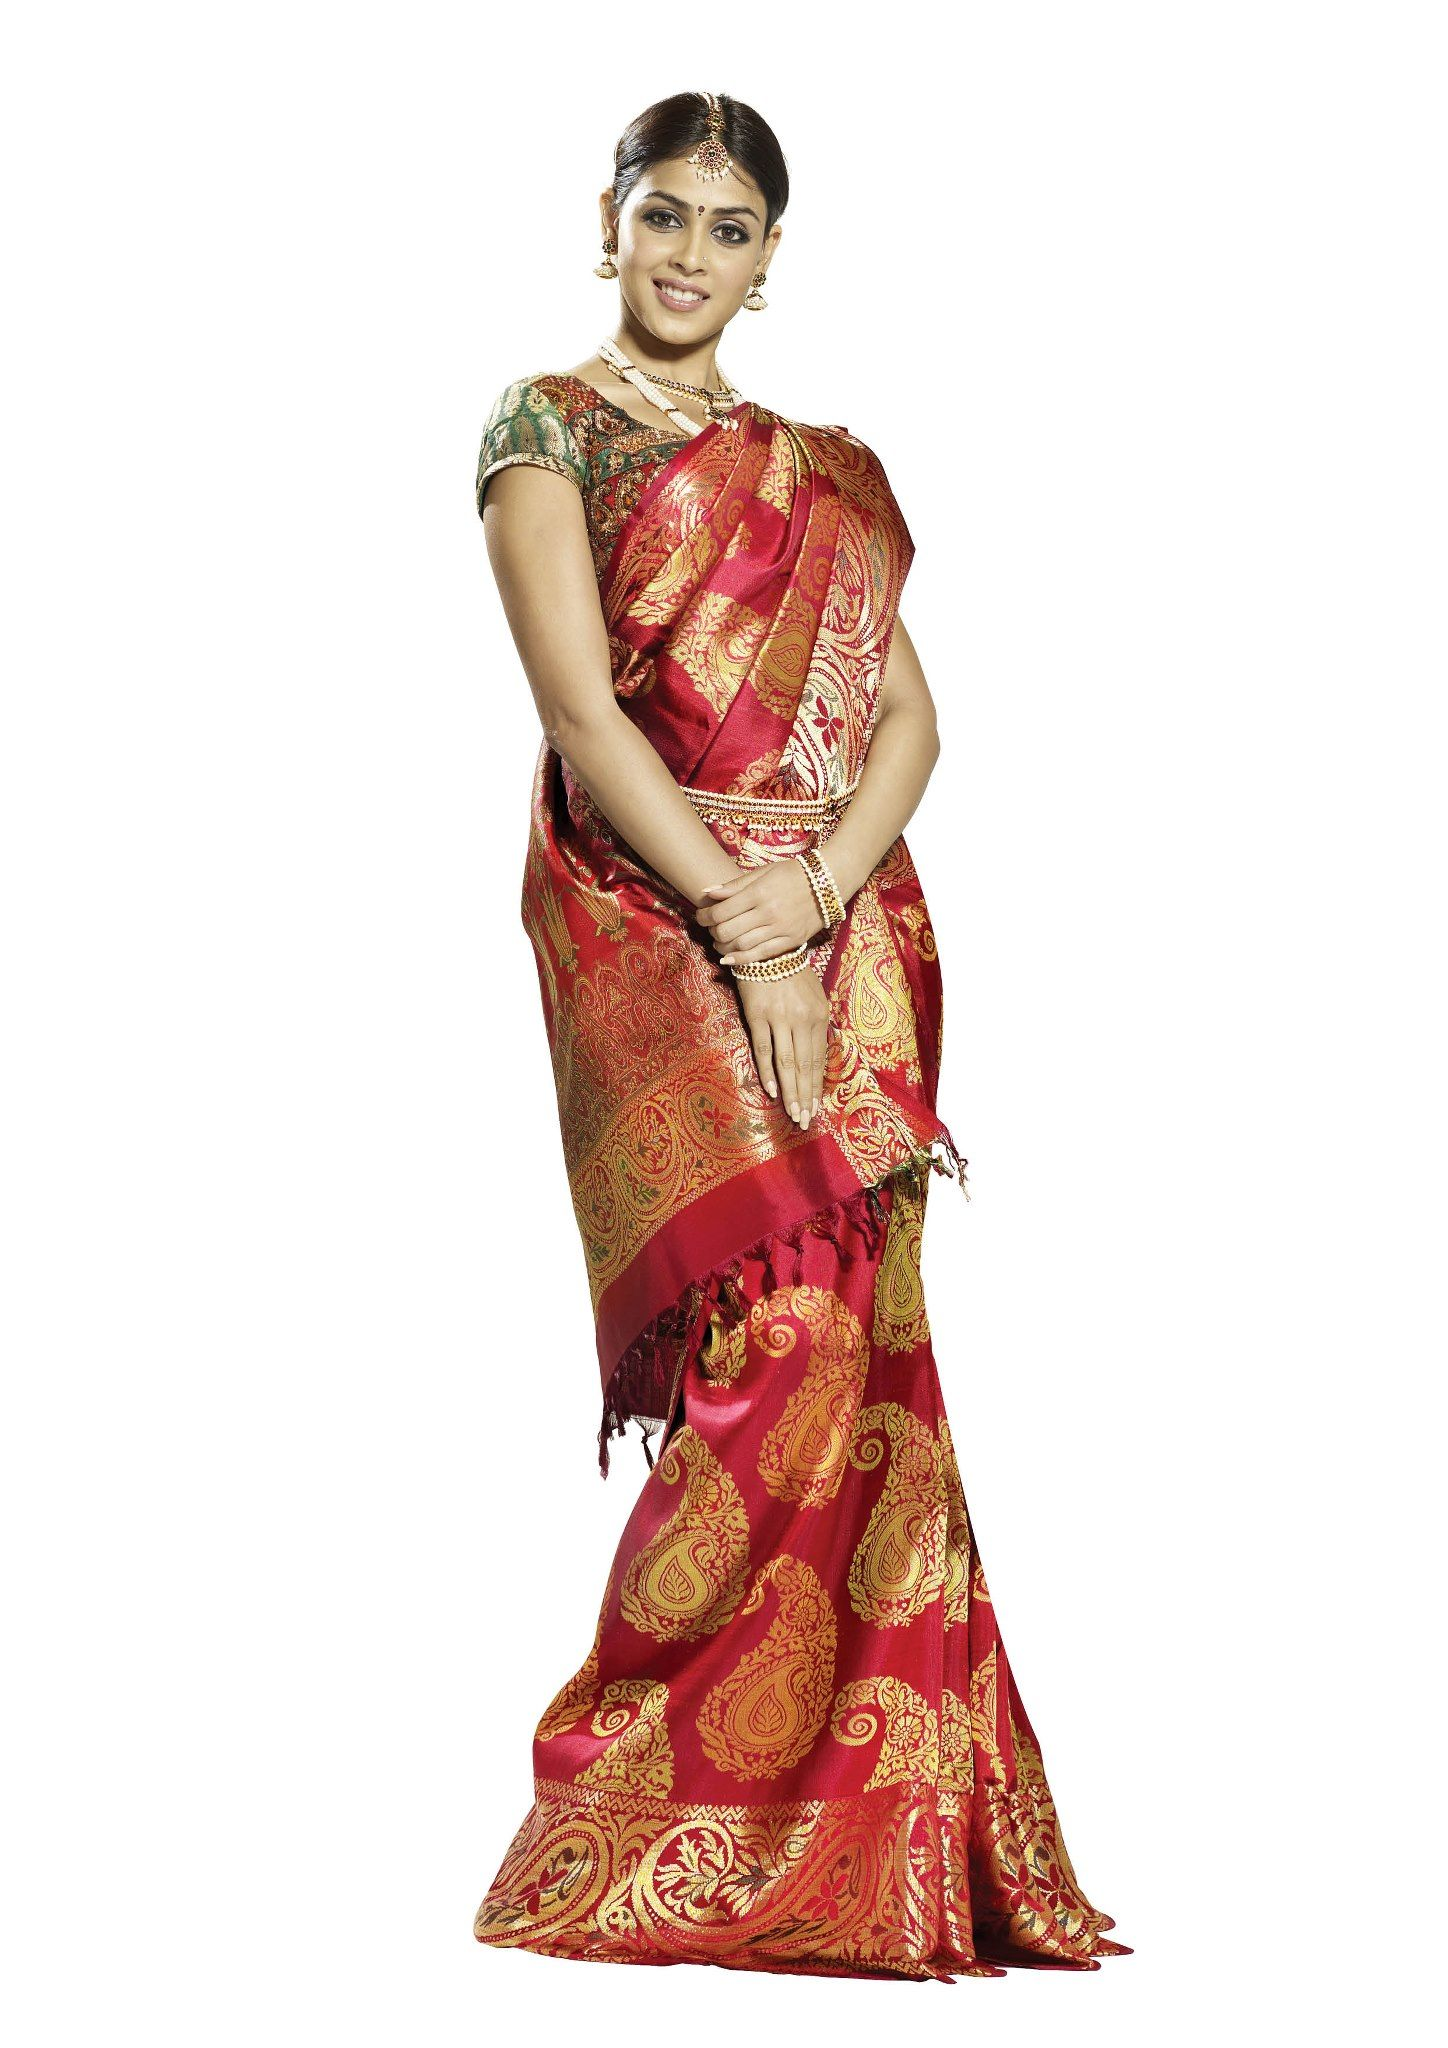 Pin by Ahsin :) on South Indian Weddings | Pinterest | Saree, South ...